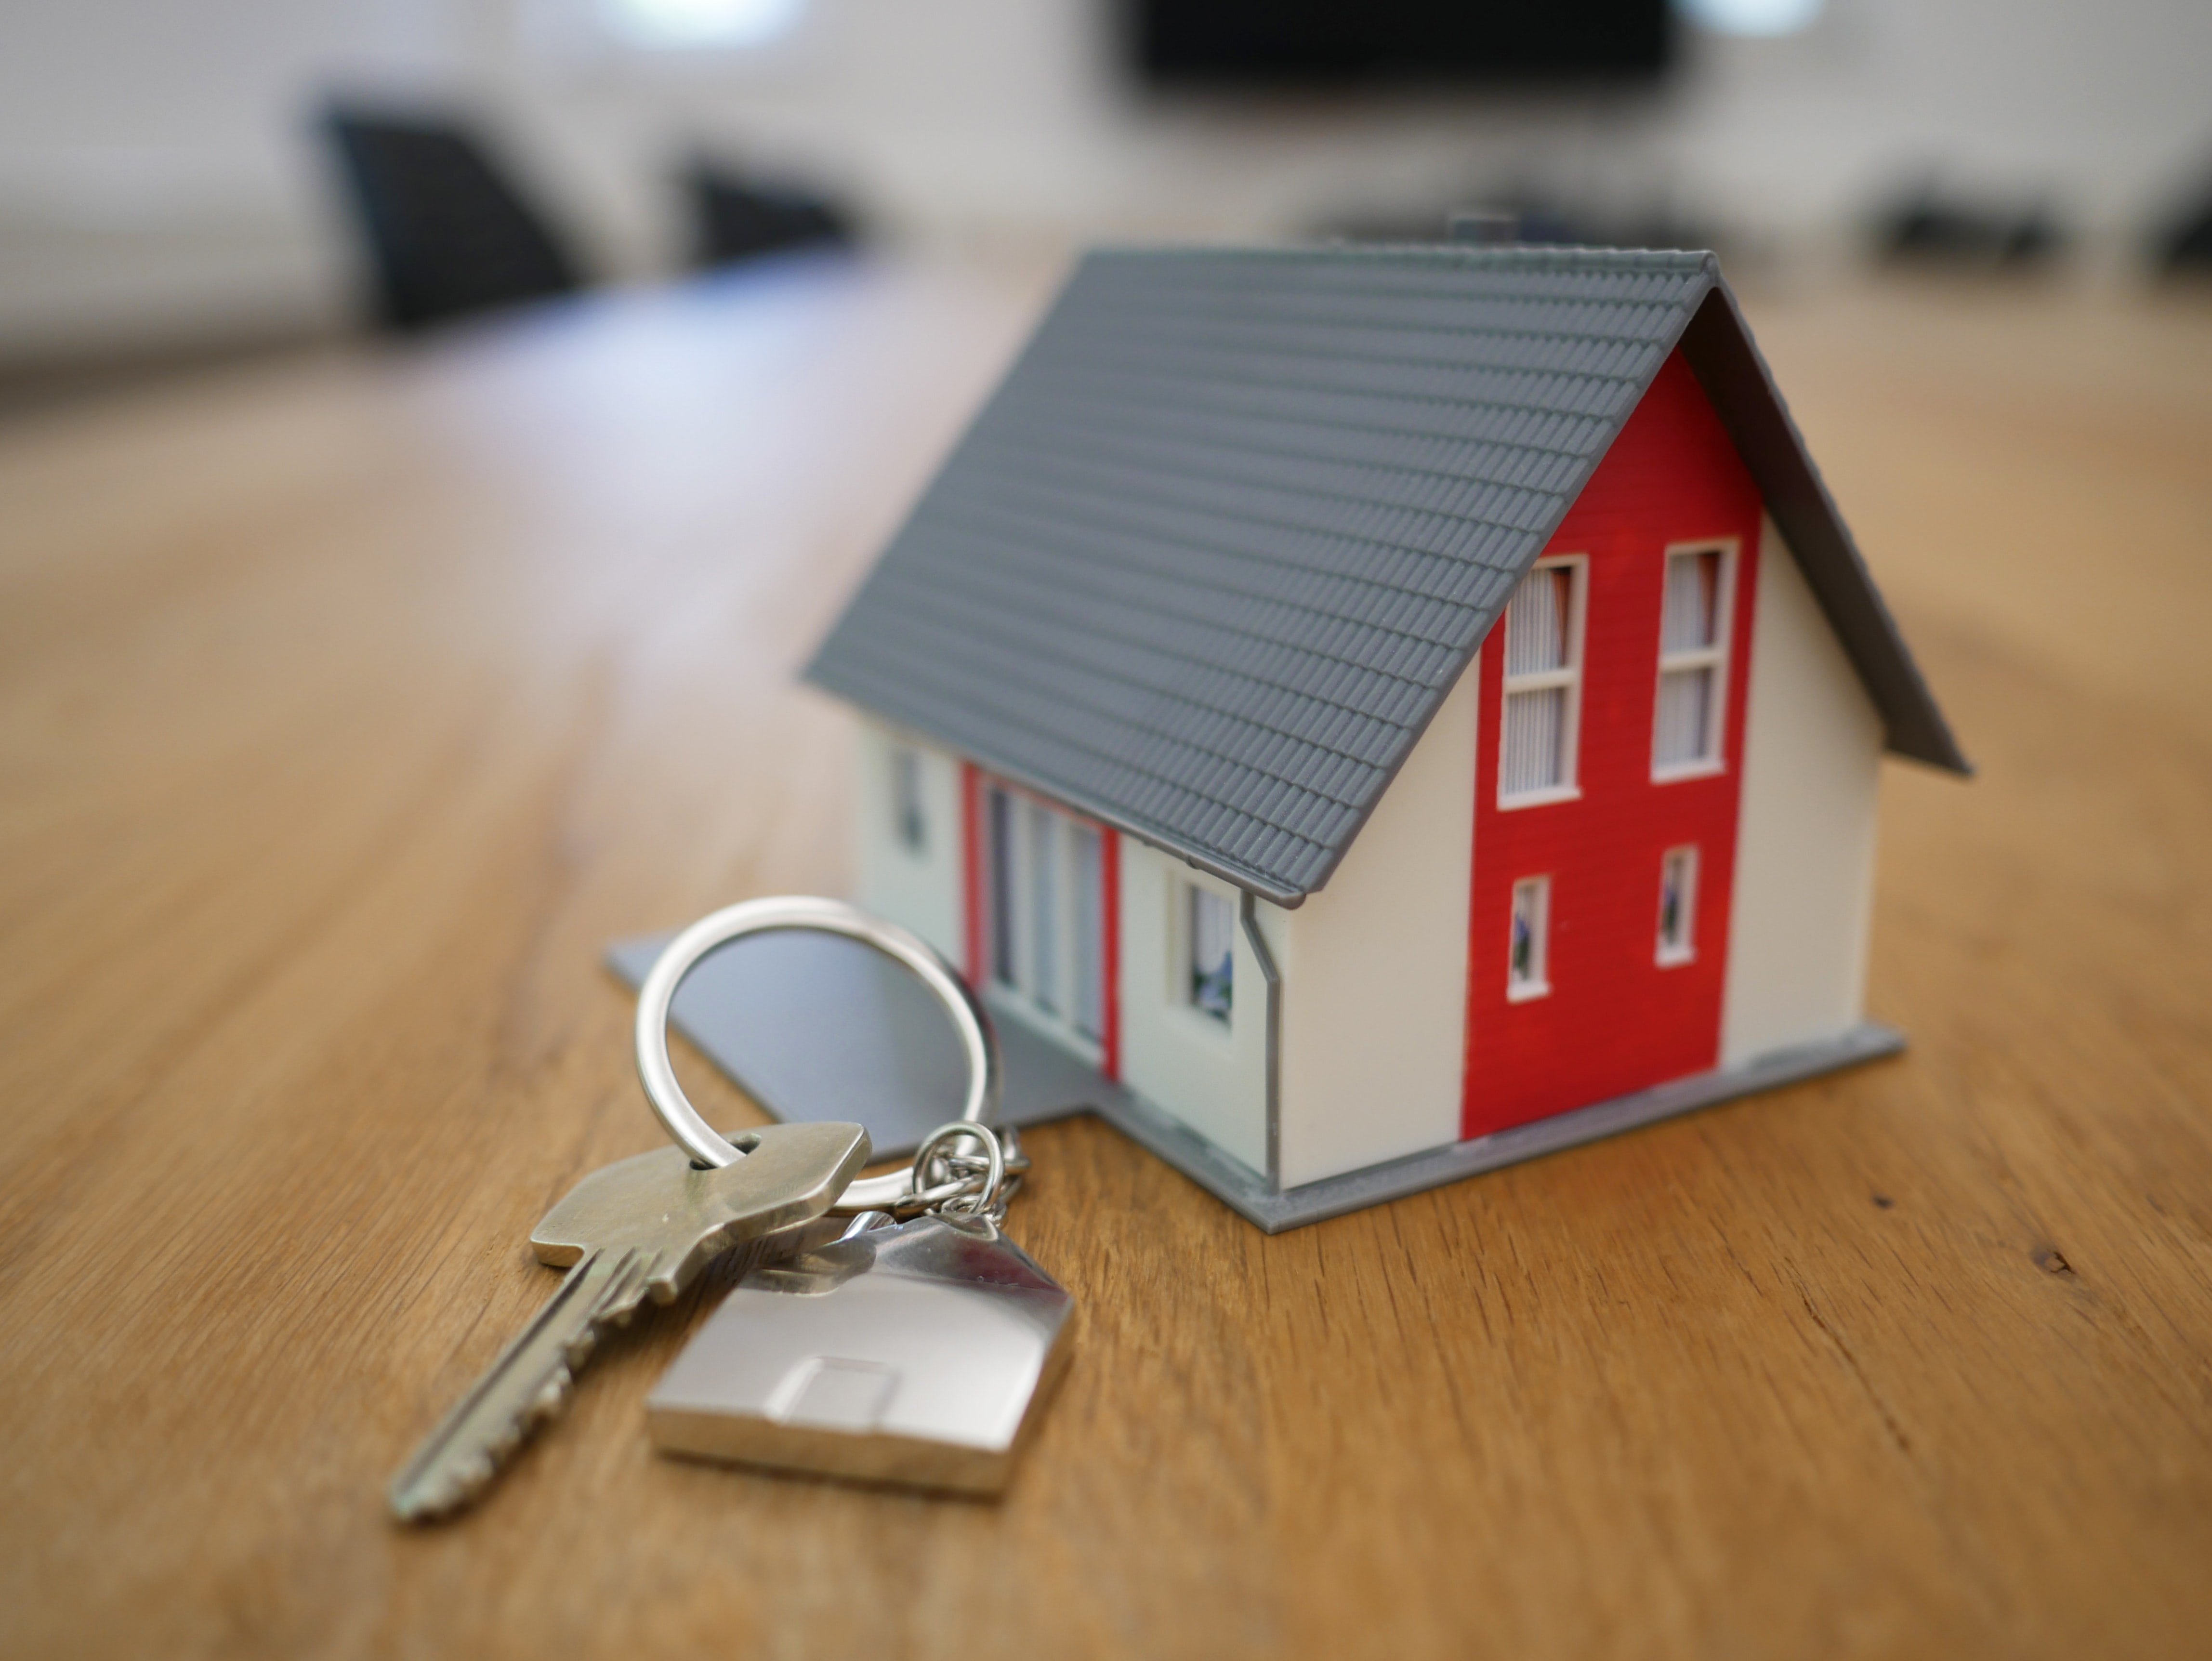 3 Ways Brokerages Can Leverage Smart Technology to Get More Listings